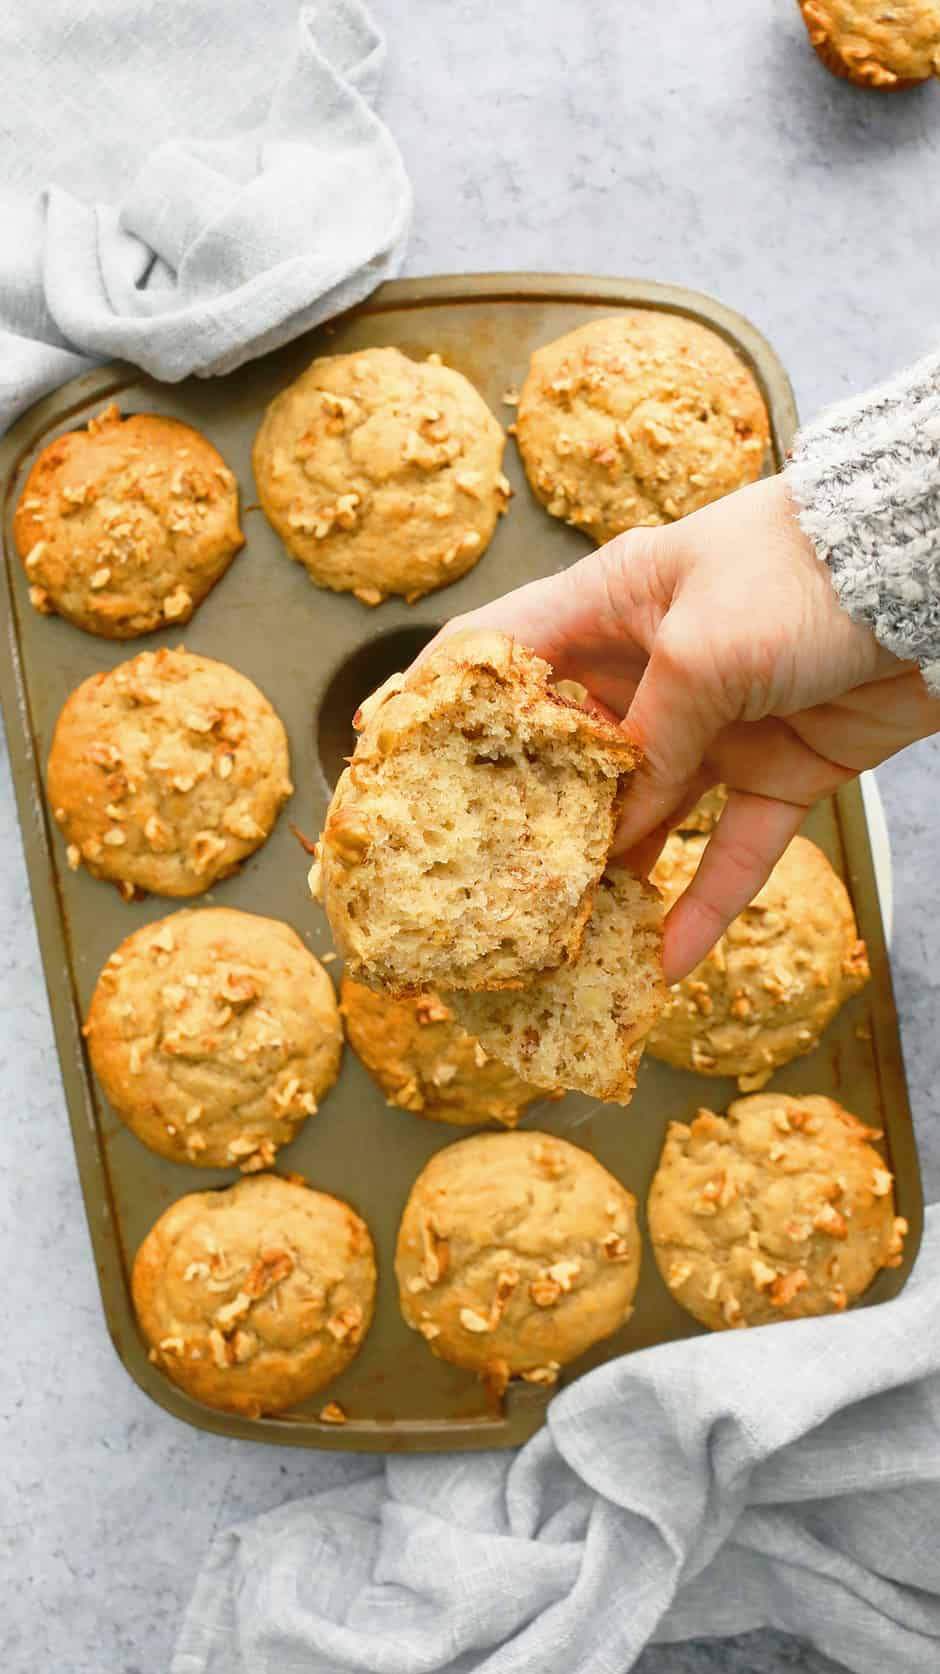 a hand holding half a banana muffin above a pan full of muffins